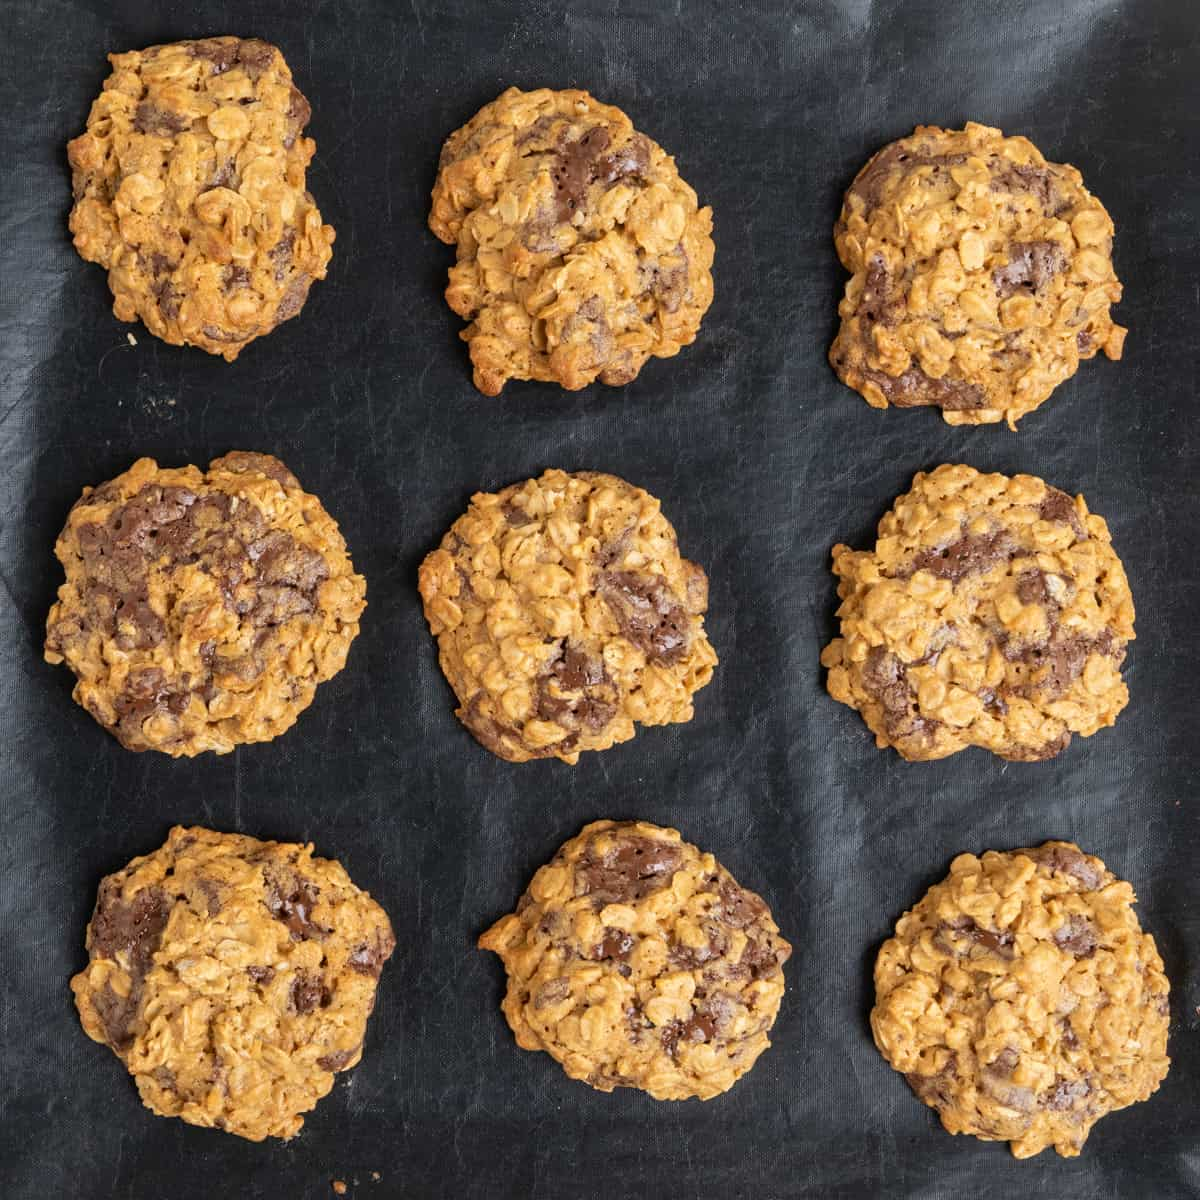 Baked cookies on a baking tray.